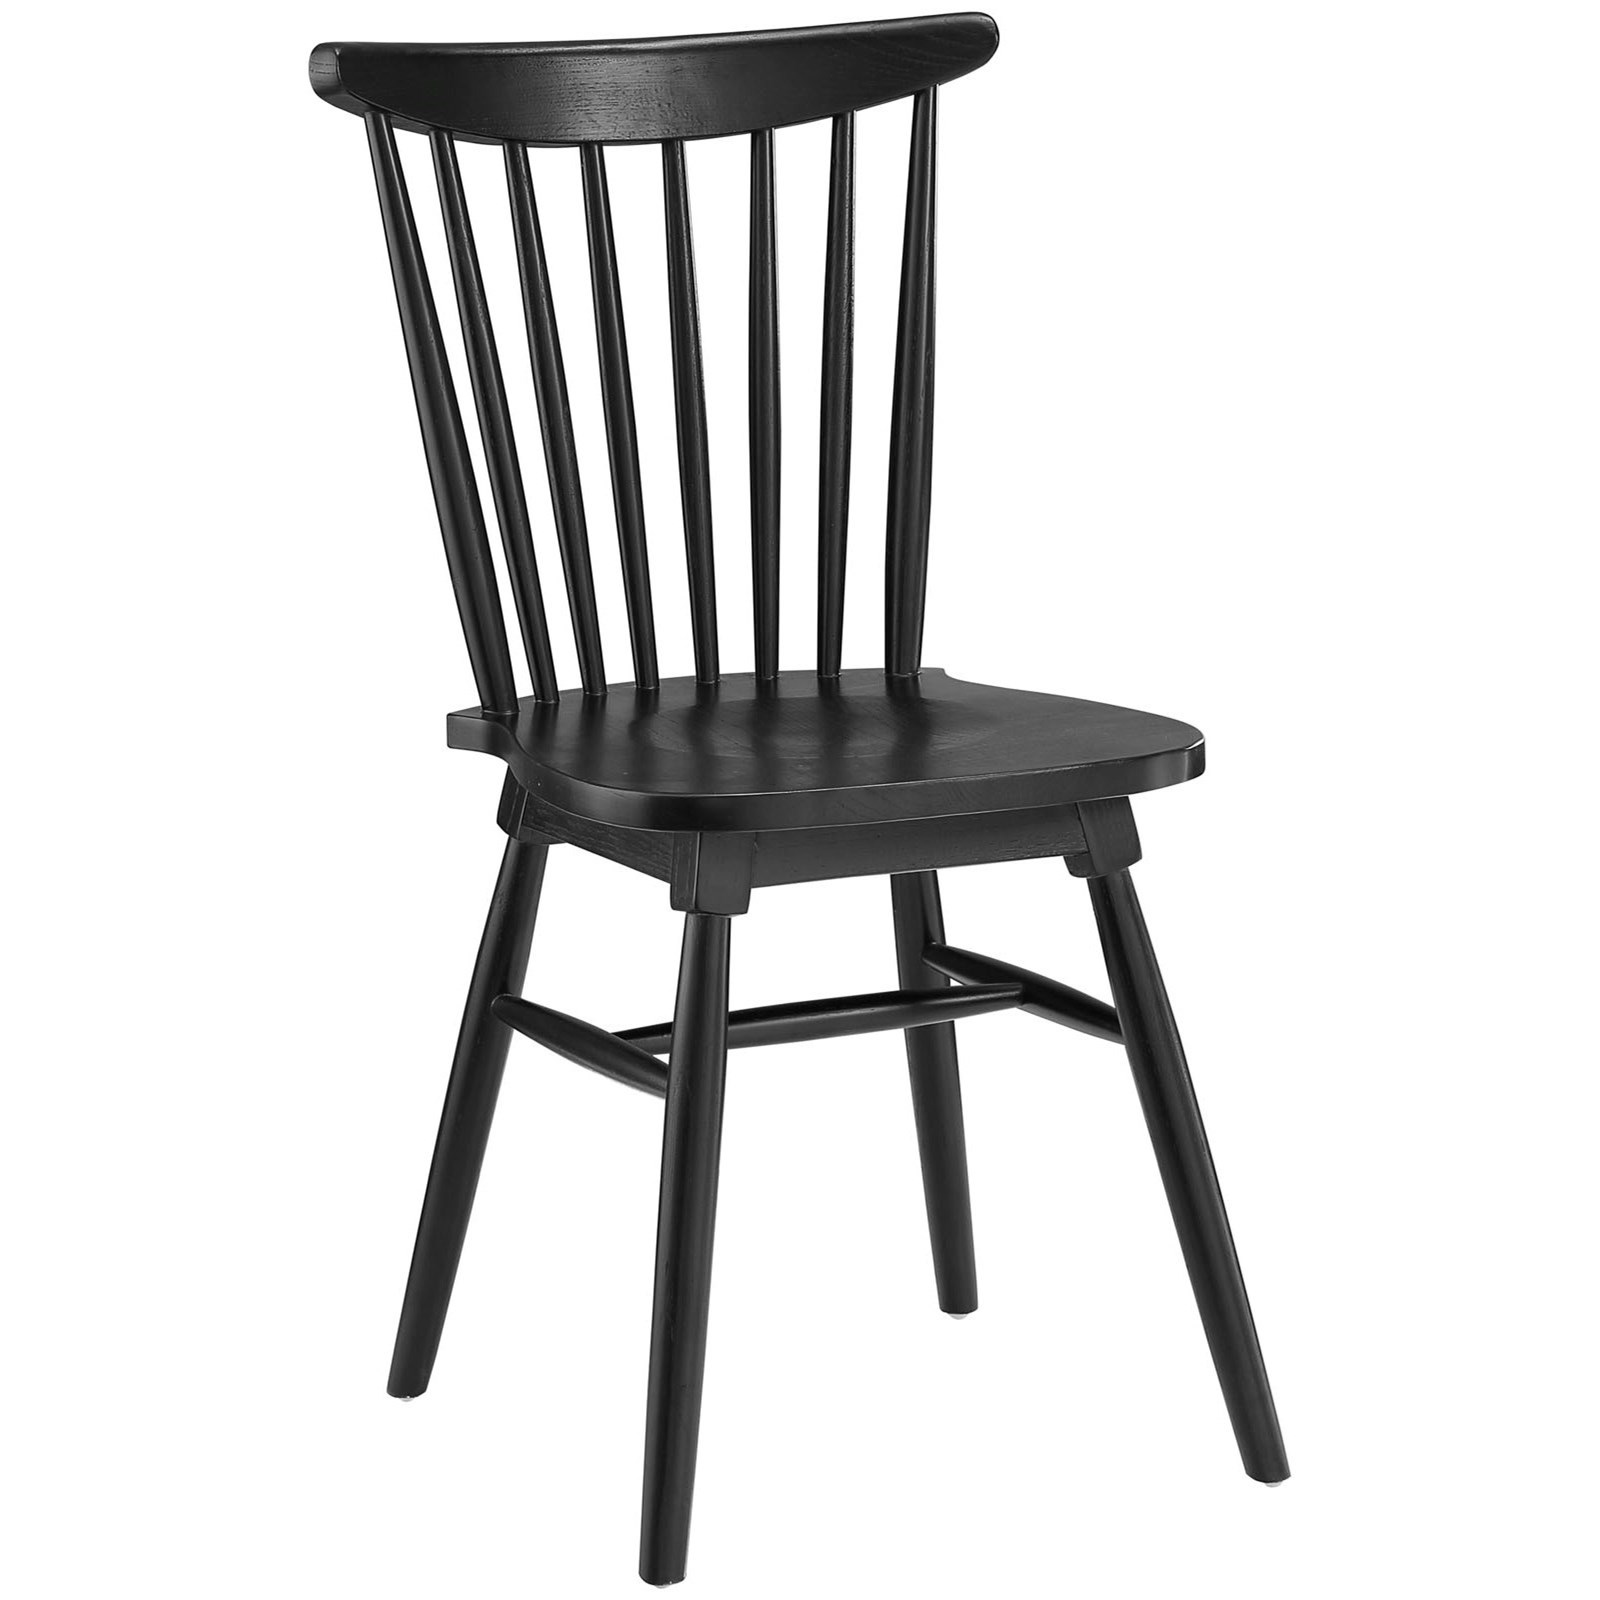 Modway Amble Dining Side Chair - Item Number: EEI-1539-BLK